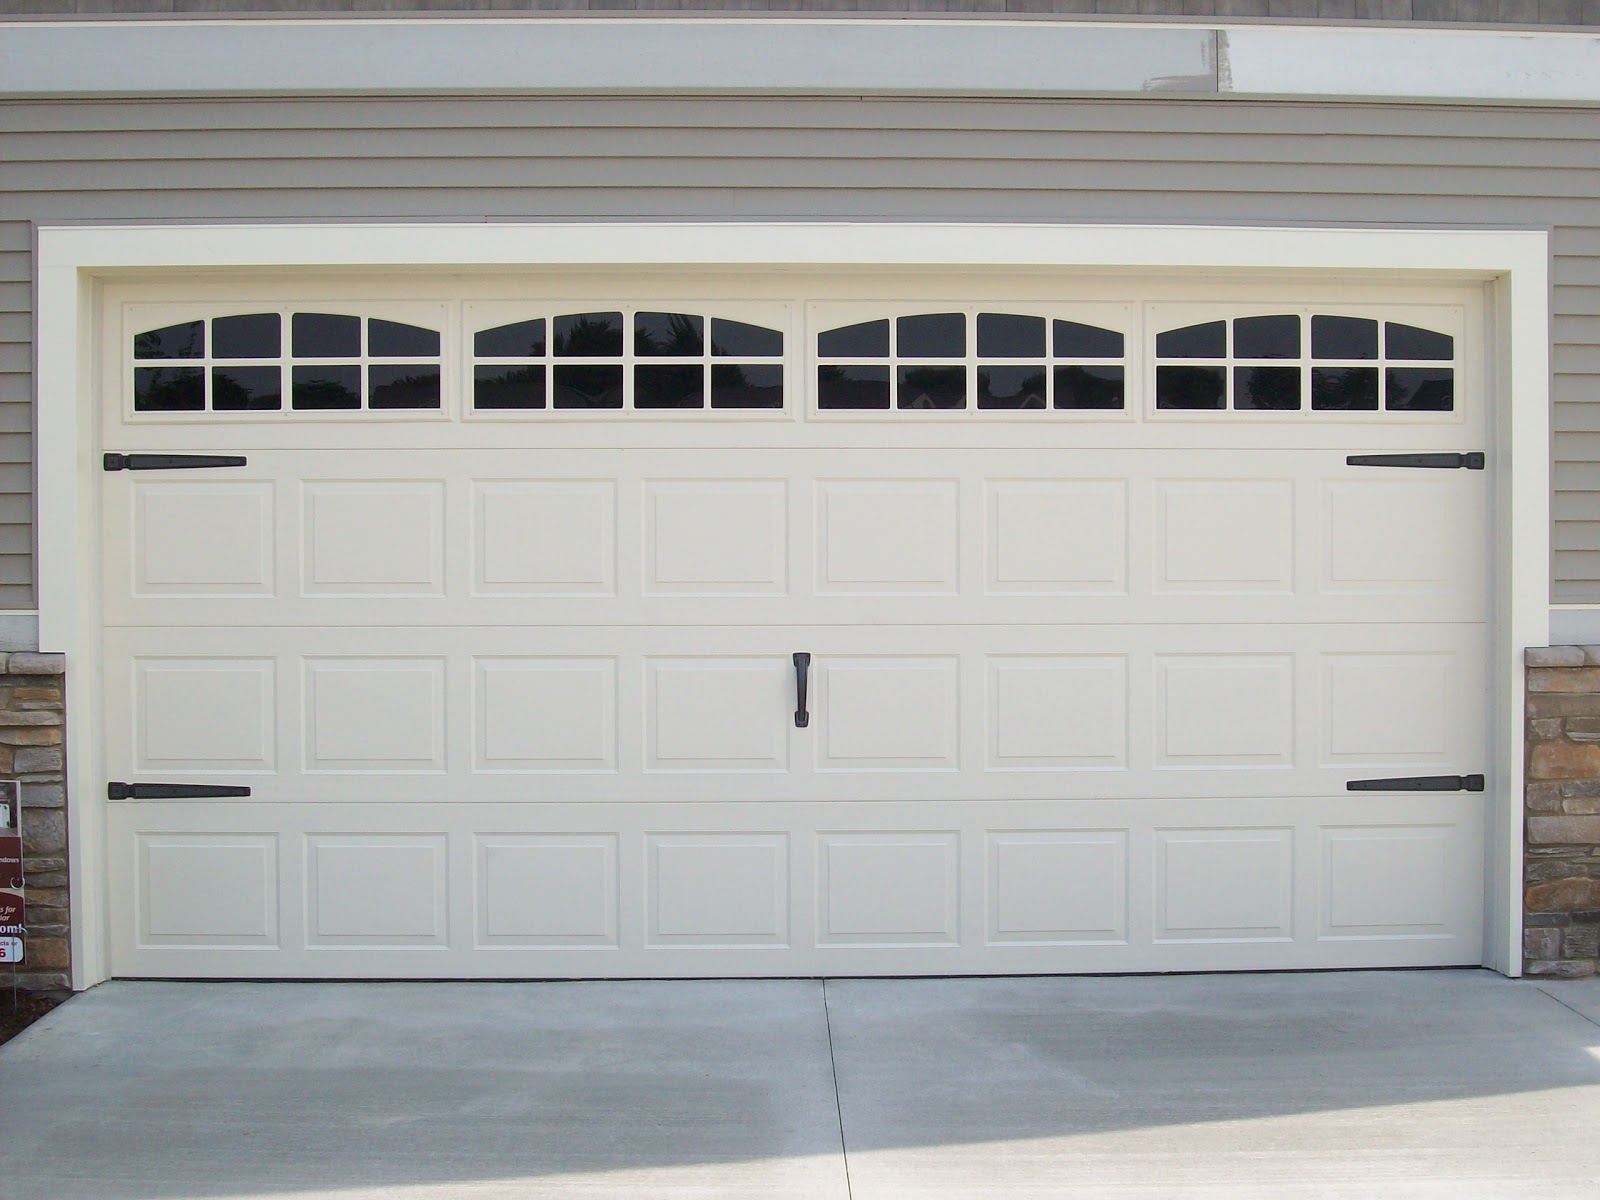 Coach House Accents: Makeover Your Garage Door with Coach ...